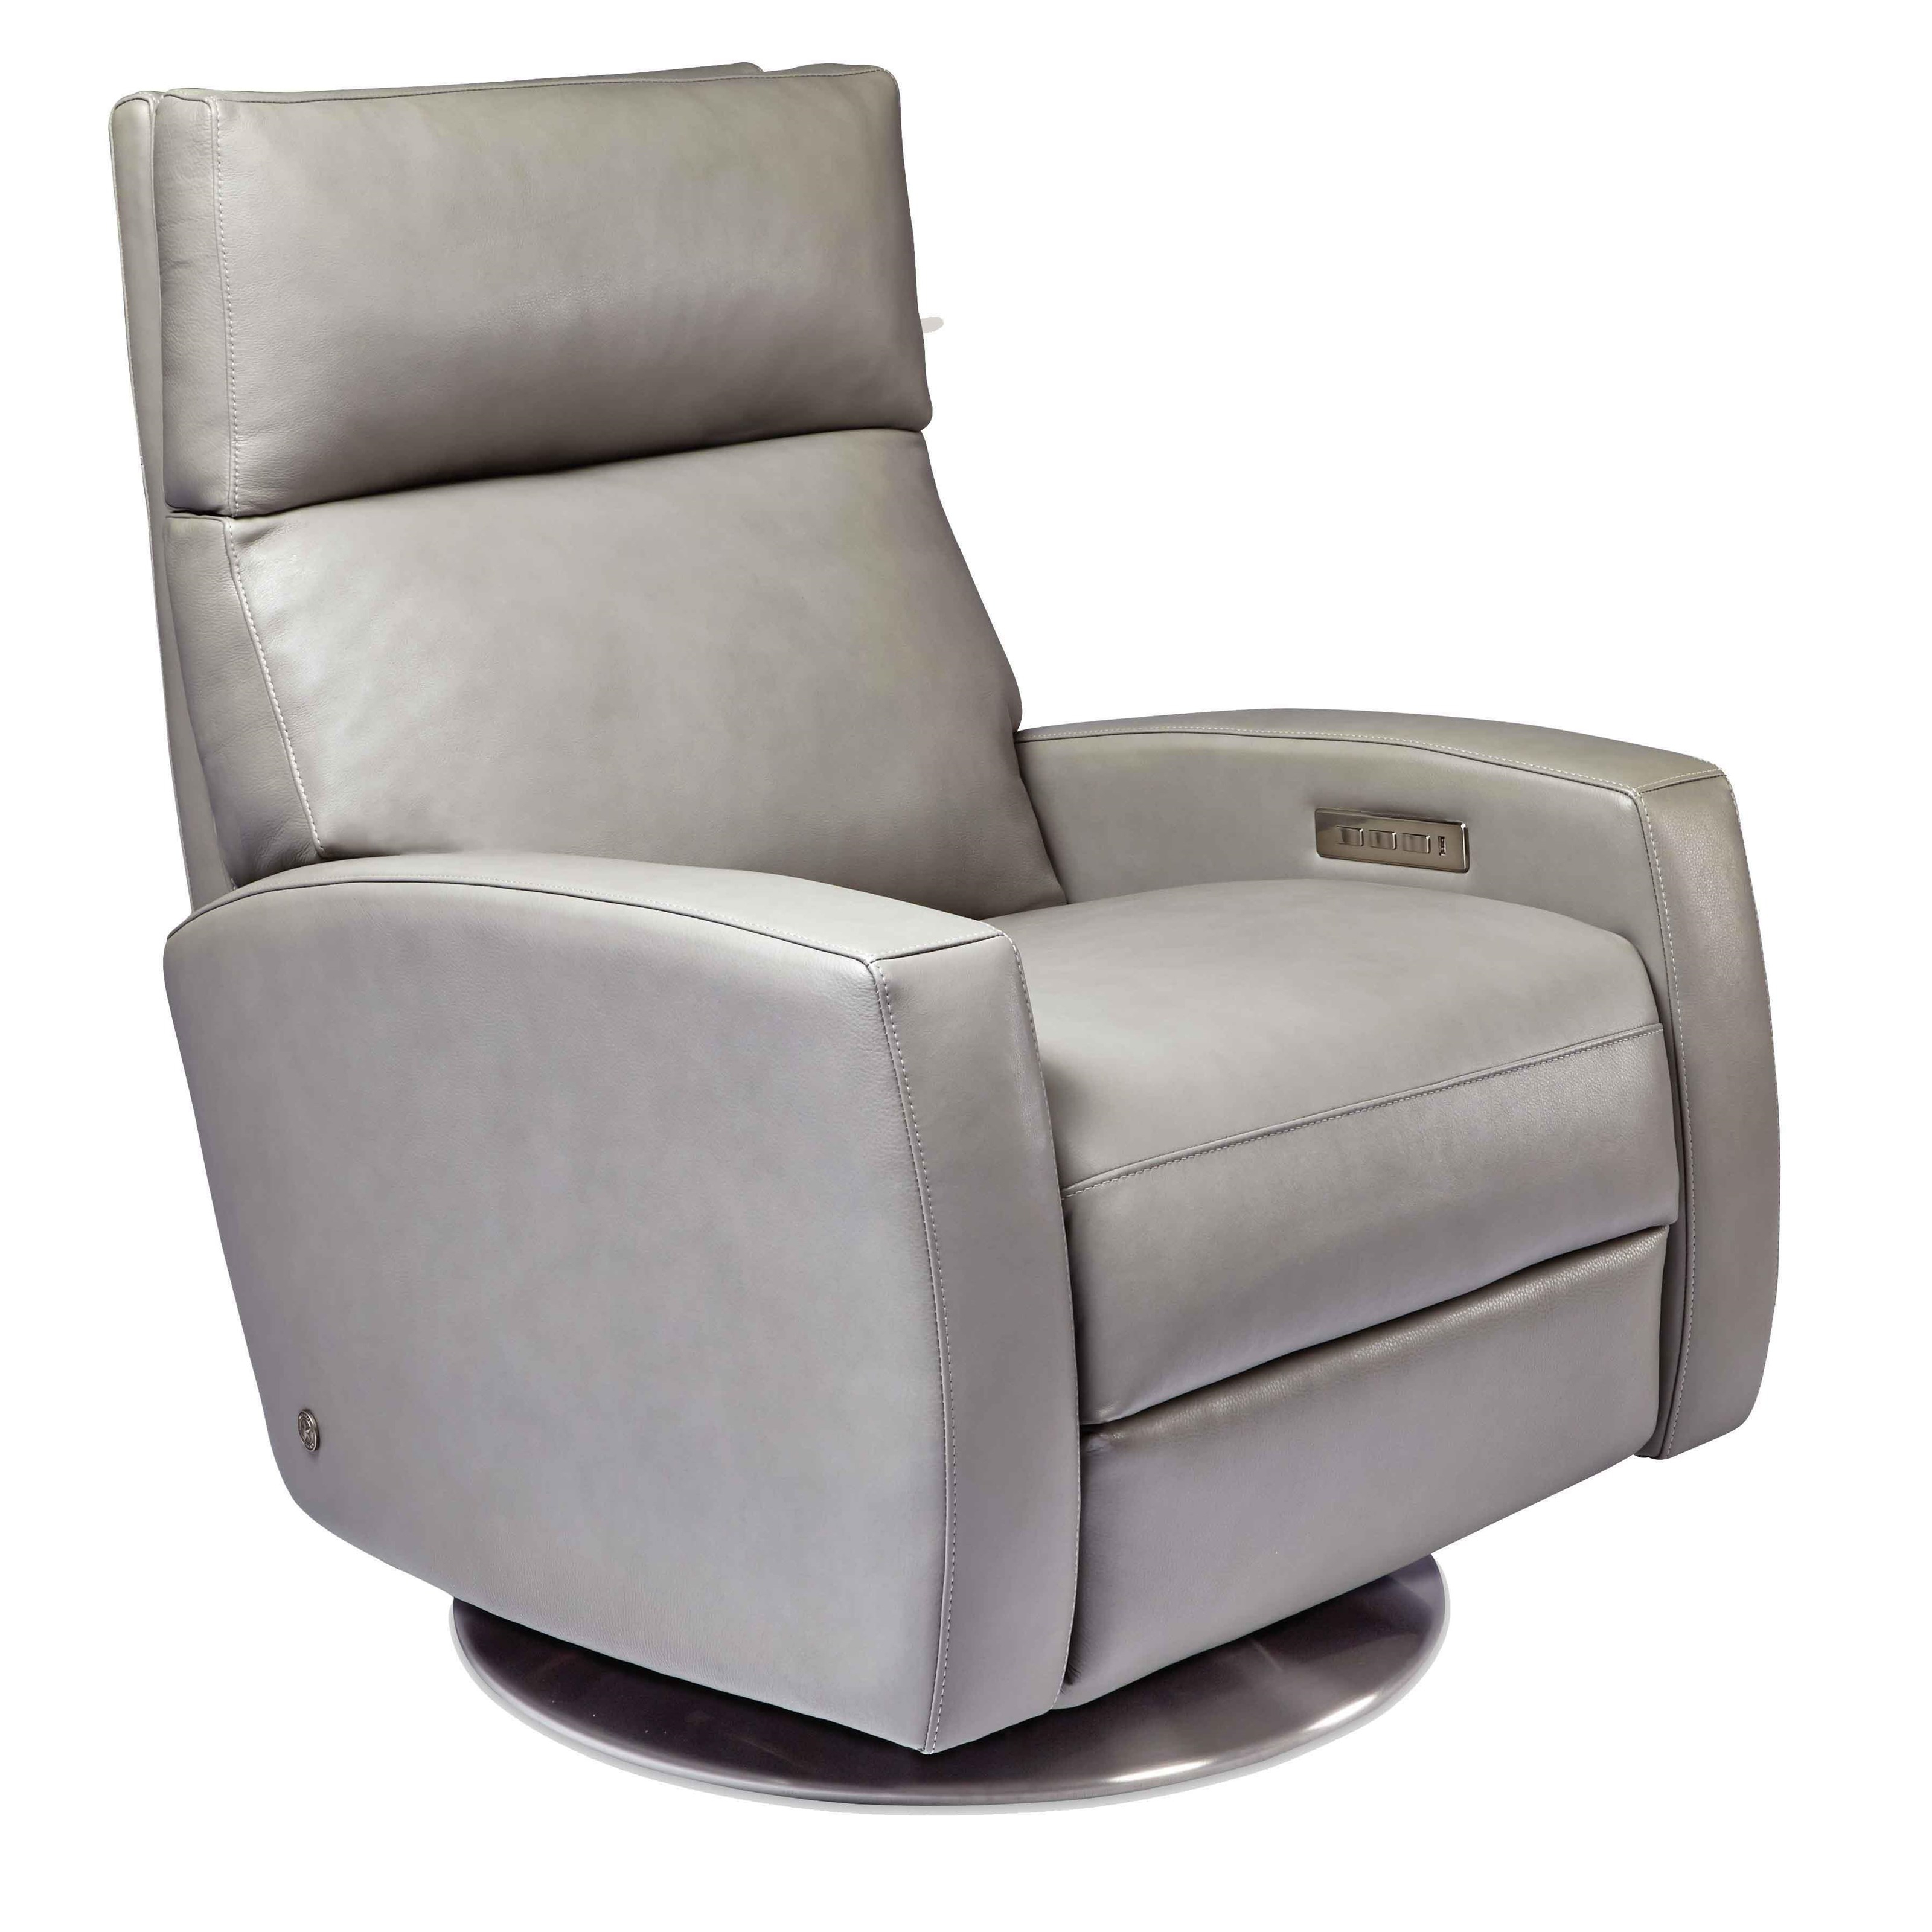 Manor Grey Swivel Chairs Within Favorite Chairs (View 13 of 20)